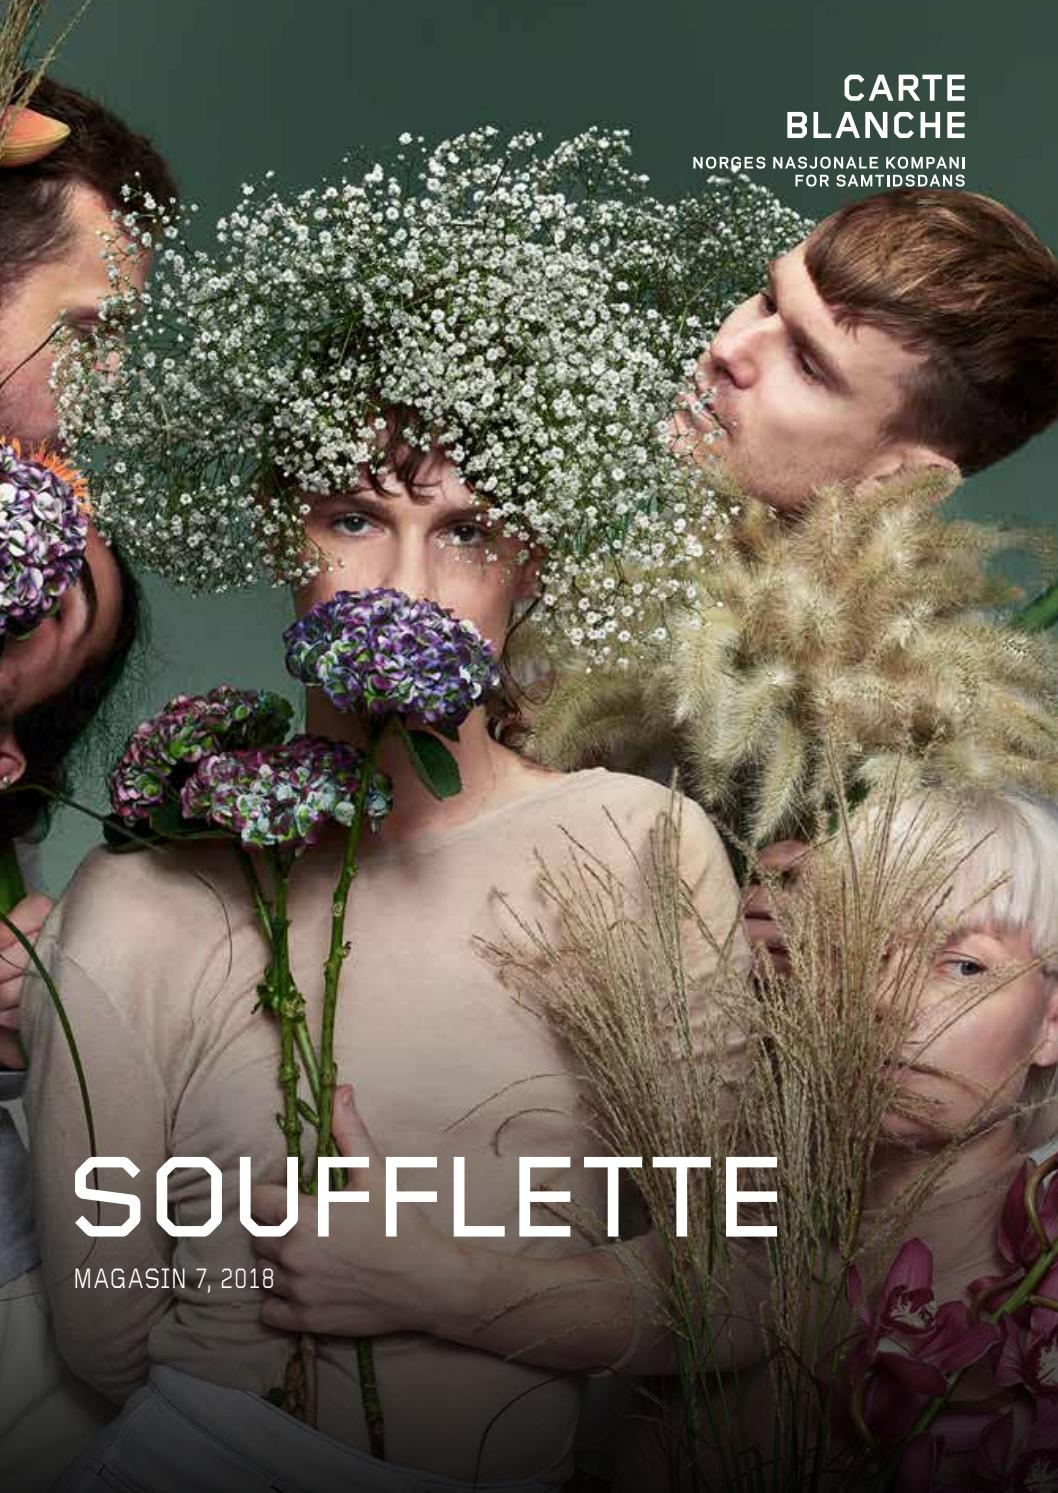 f70c3b78 Magasin #7 - Soufflette by Carte Blanche NO - issuu